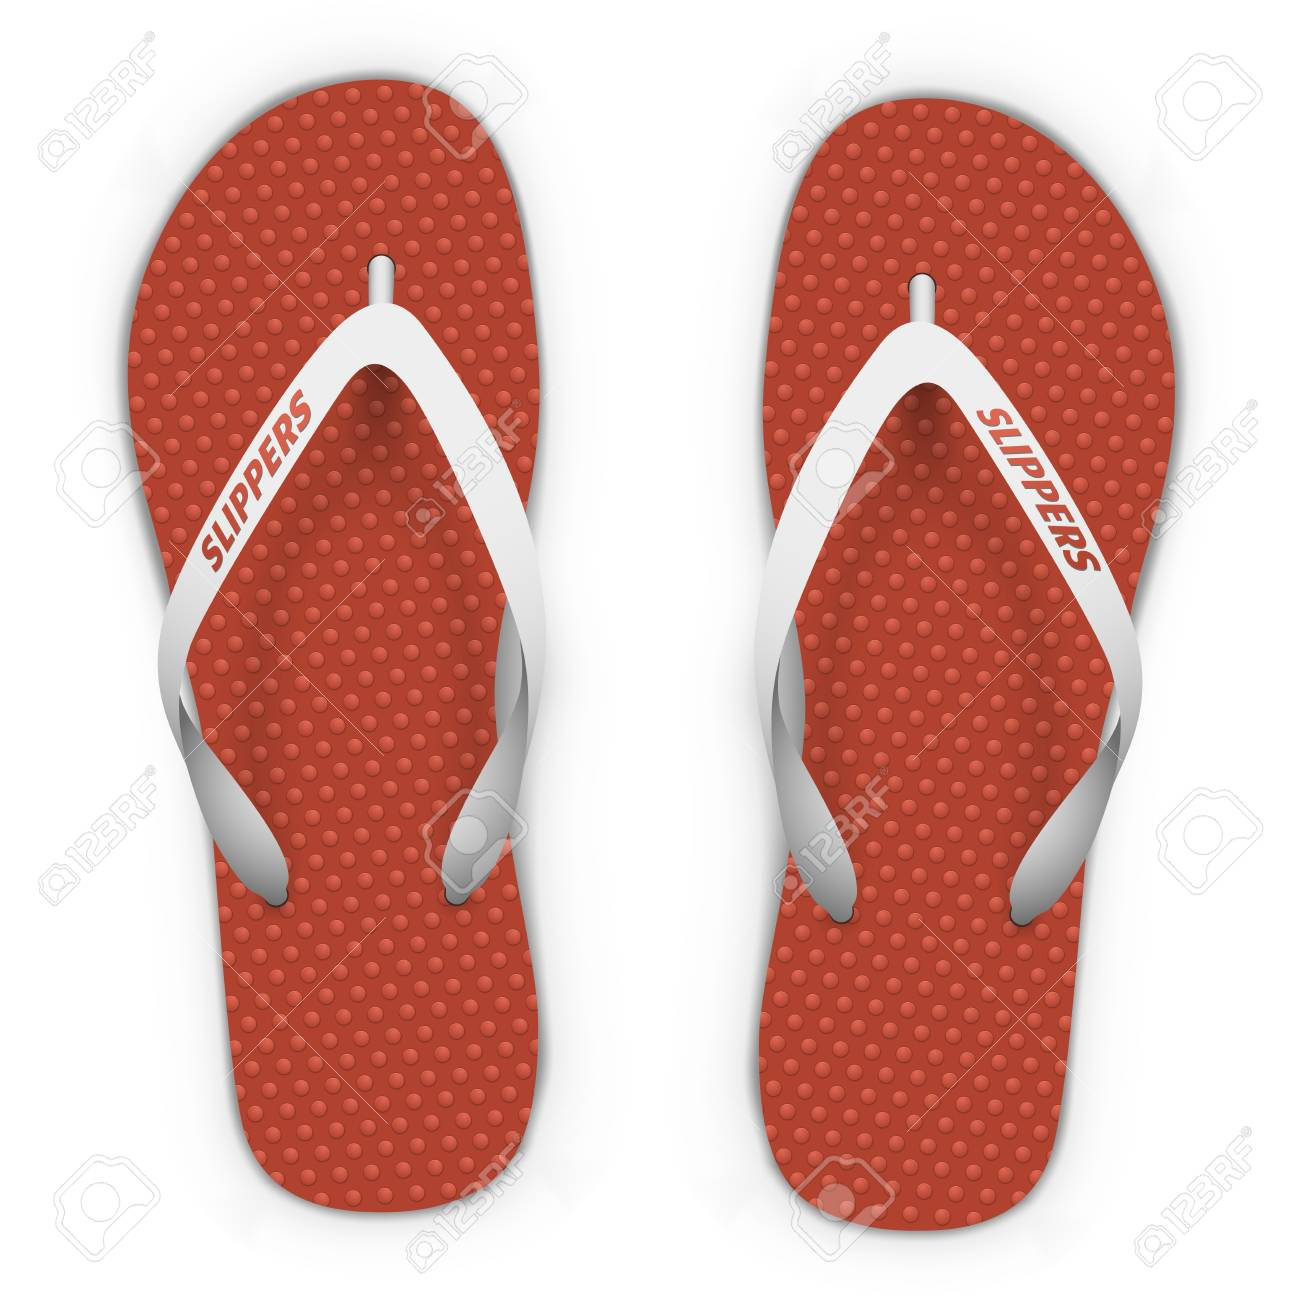 0a834e7426c478 Red and white beach slippers isolated on white background. Flip flops top  view vector template